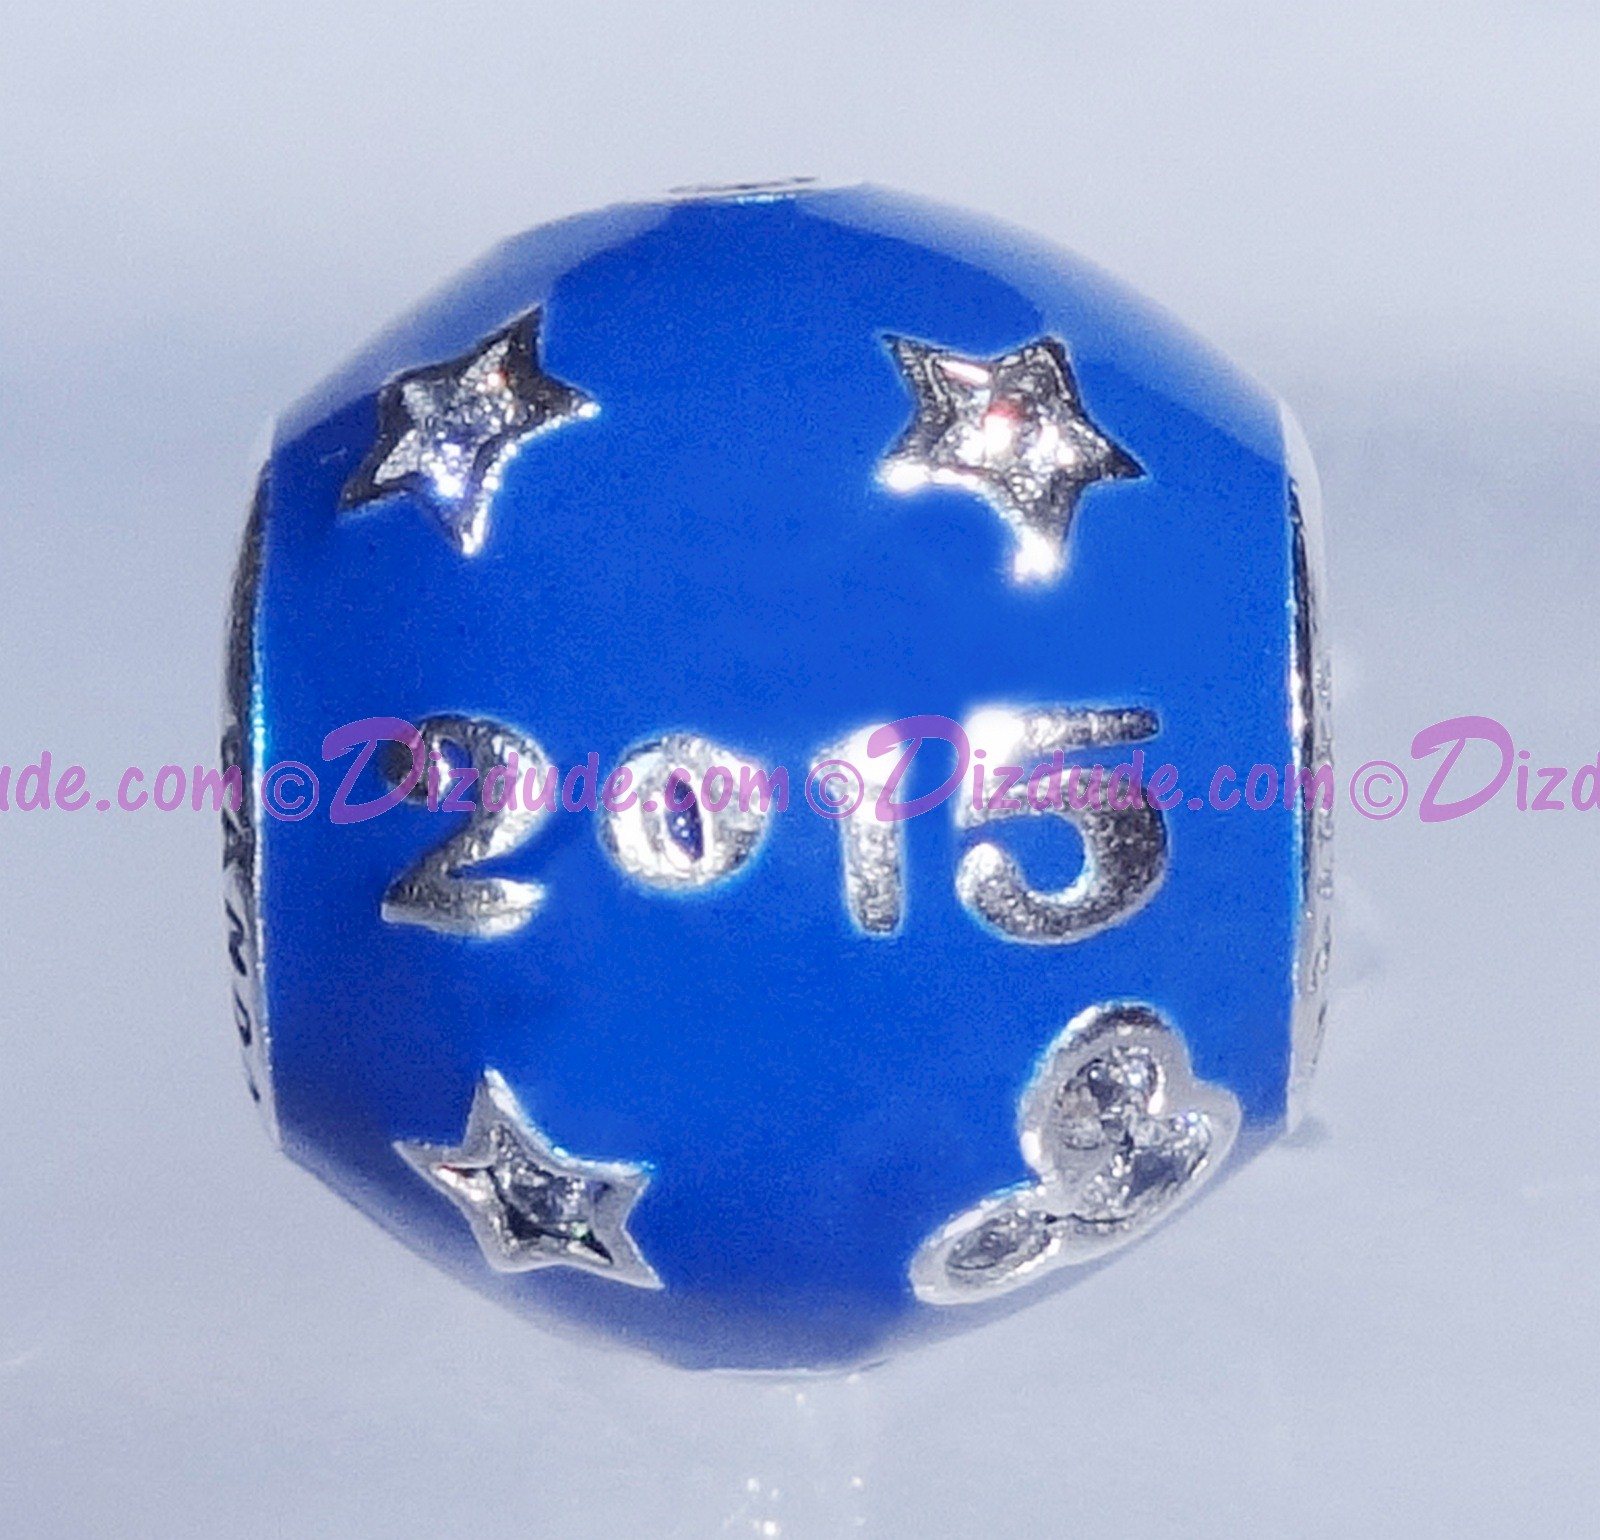 """(SOLD OUT) Disney Pandora """"2015 Edition"""" Sterling Silver Charm with Cubic Zirconias - Disney World Parks Exclusive"""